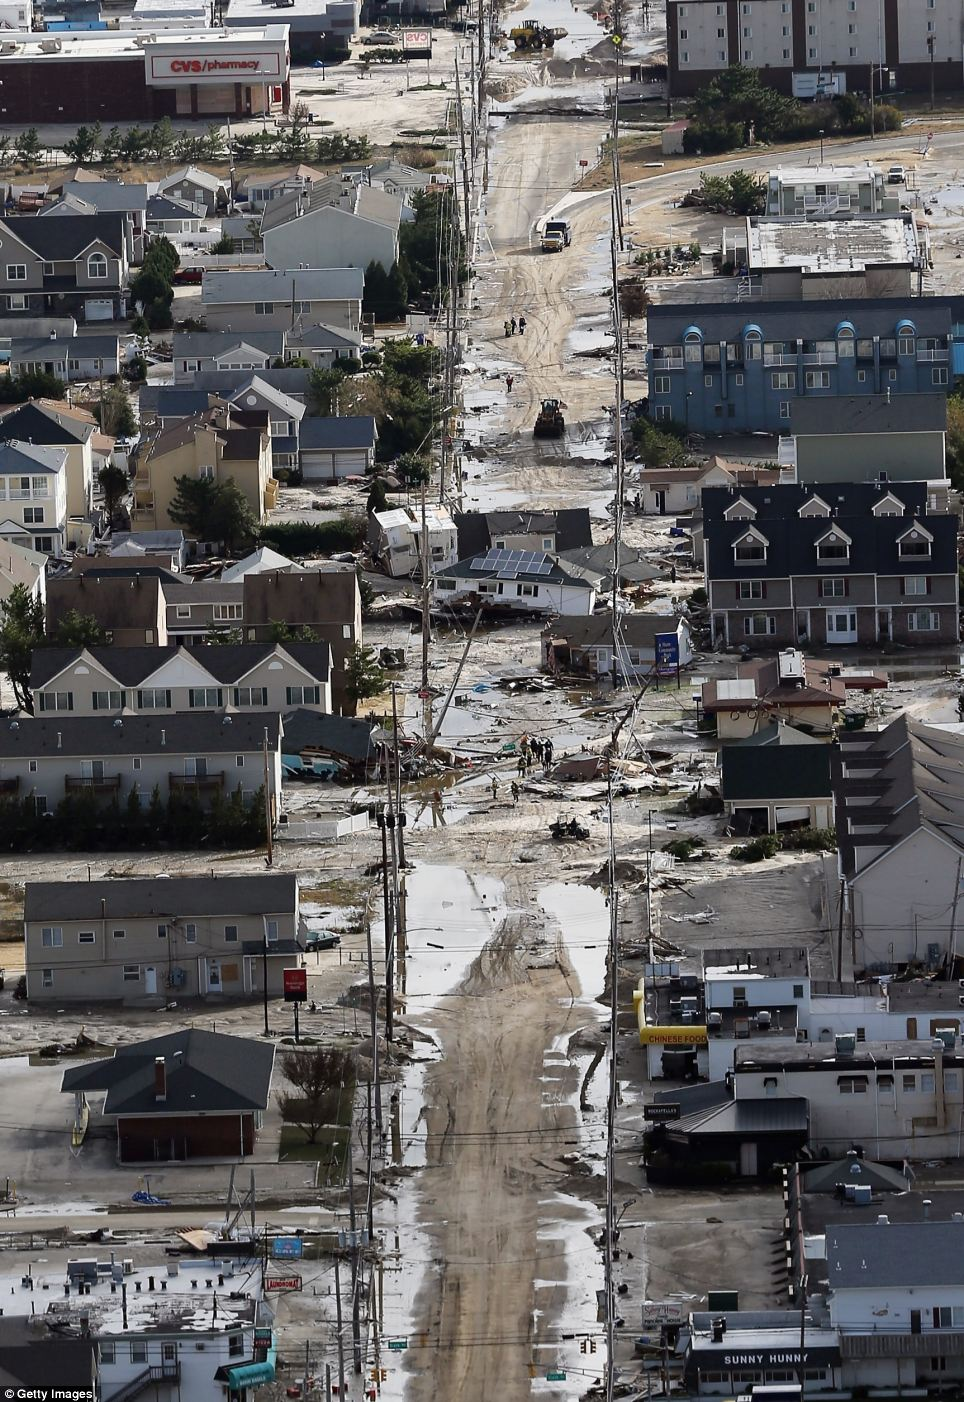 Destroyed homes wrecked by Superstorm Sandy sits in the middle of a street in Seaside Heights, New Jersey